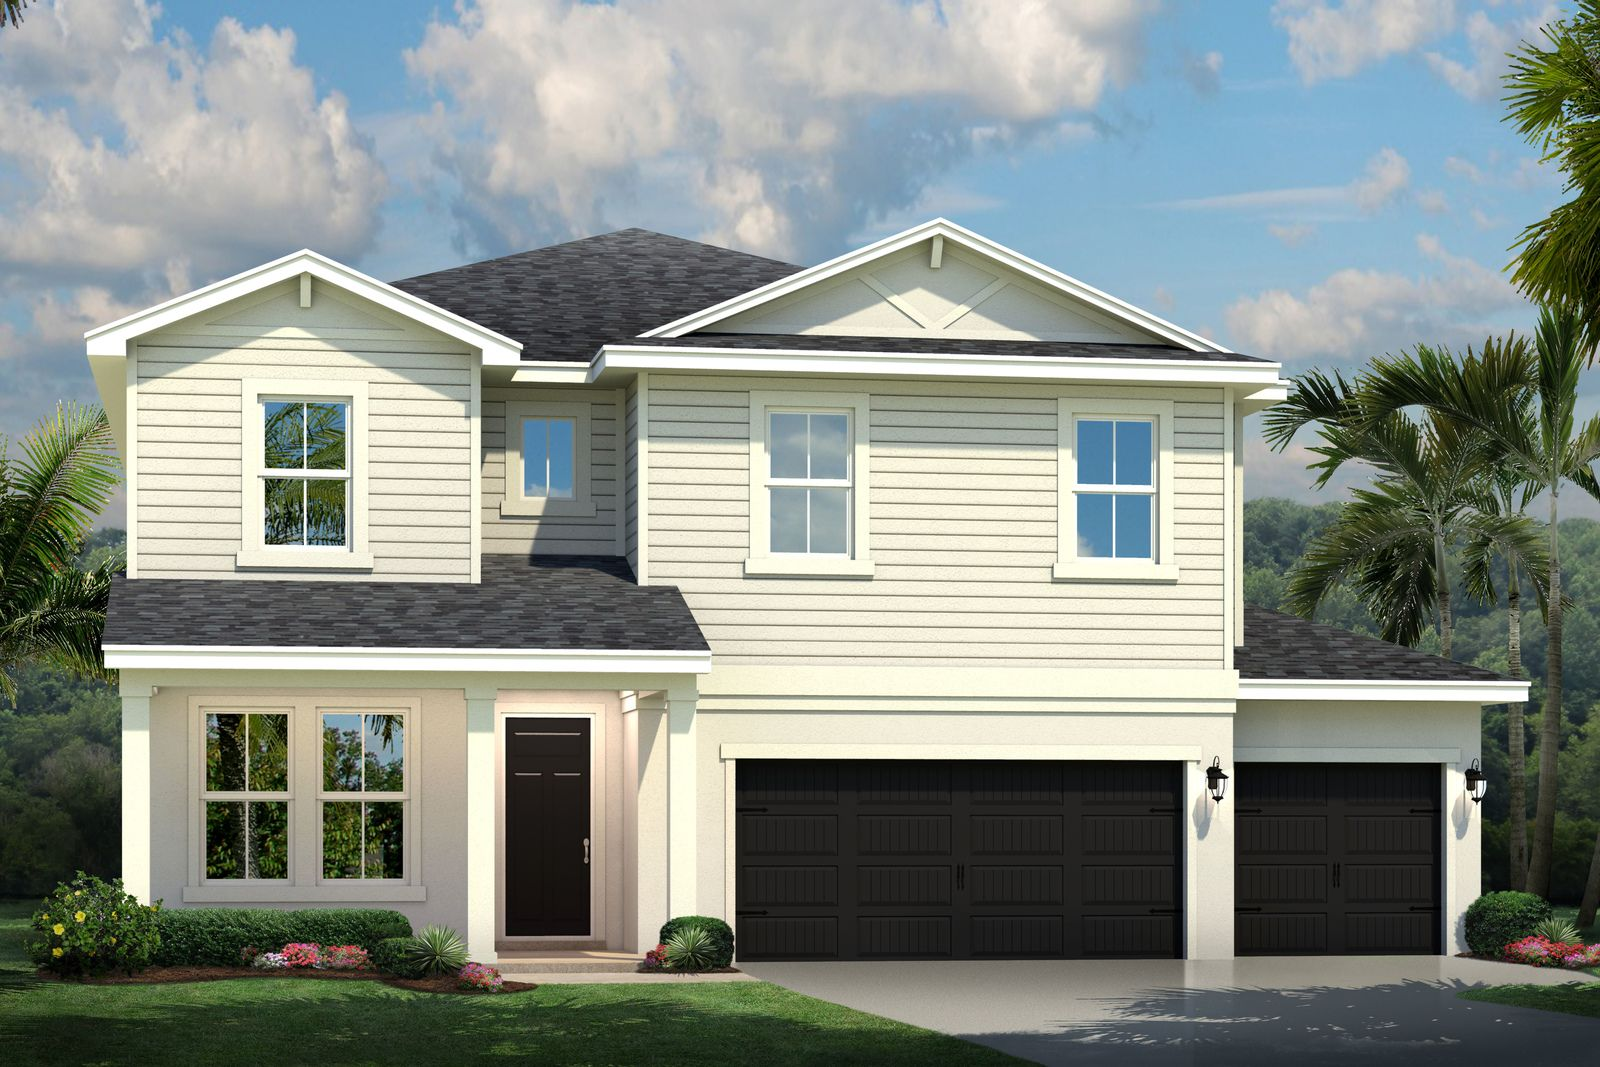 Single Family for Active at Arden Homestead Collection - Barkley 19425 Southern Blvd Loxahatchee, Florida 33470 United States